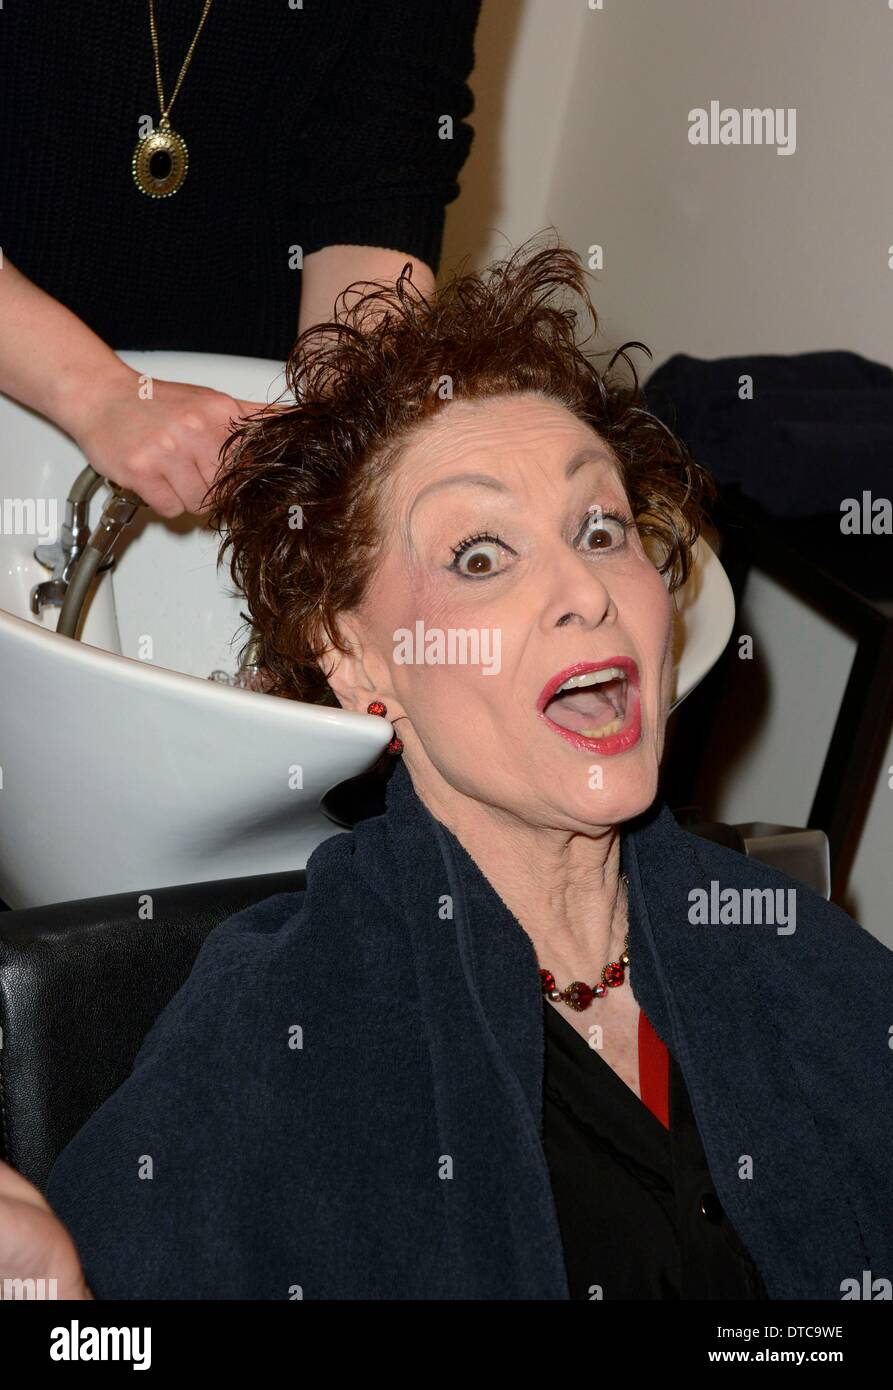 New York, NY, USA. 14th Feb, 2014. Carol Lawrence inside for Carol Lawrence Readies for Her Return to HANDLE WITH Stock Photo